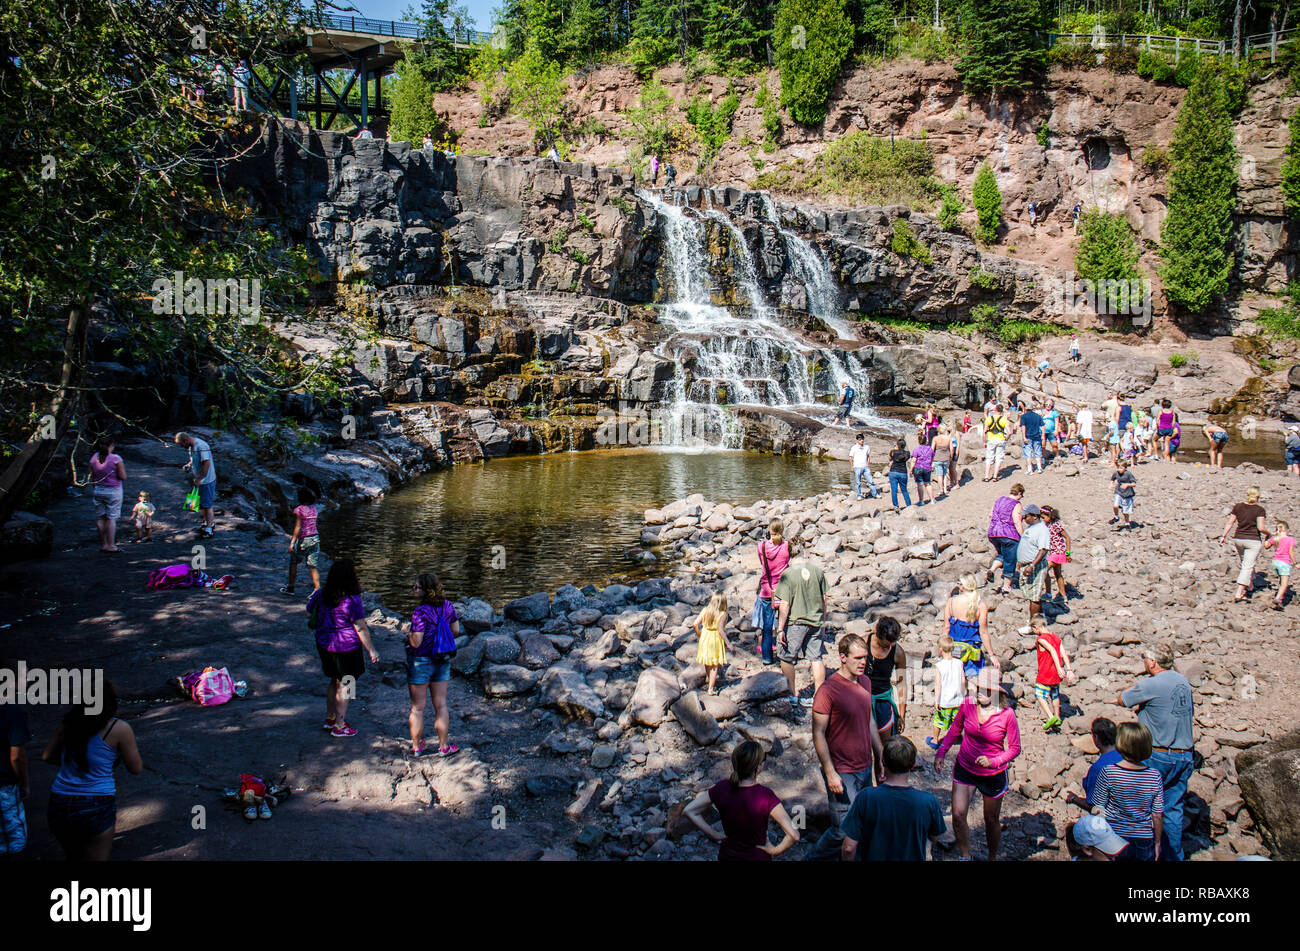 Duluth, Minnesota - August 21, 2018: Gooseberry Falls, a popular waterfall near Lake Superior, attracts a crowd of visitors on a summer day. - Stock Image